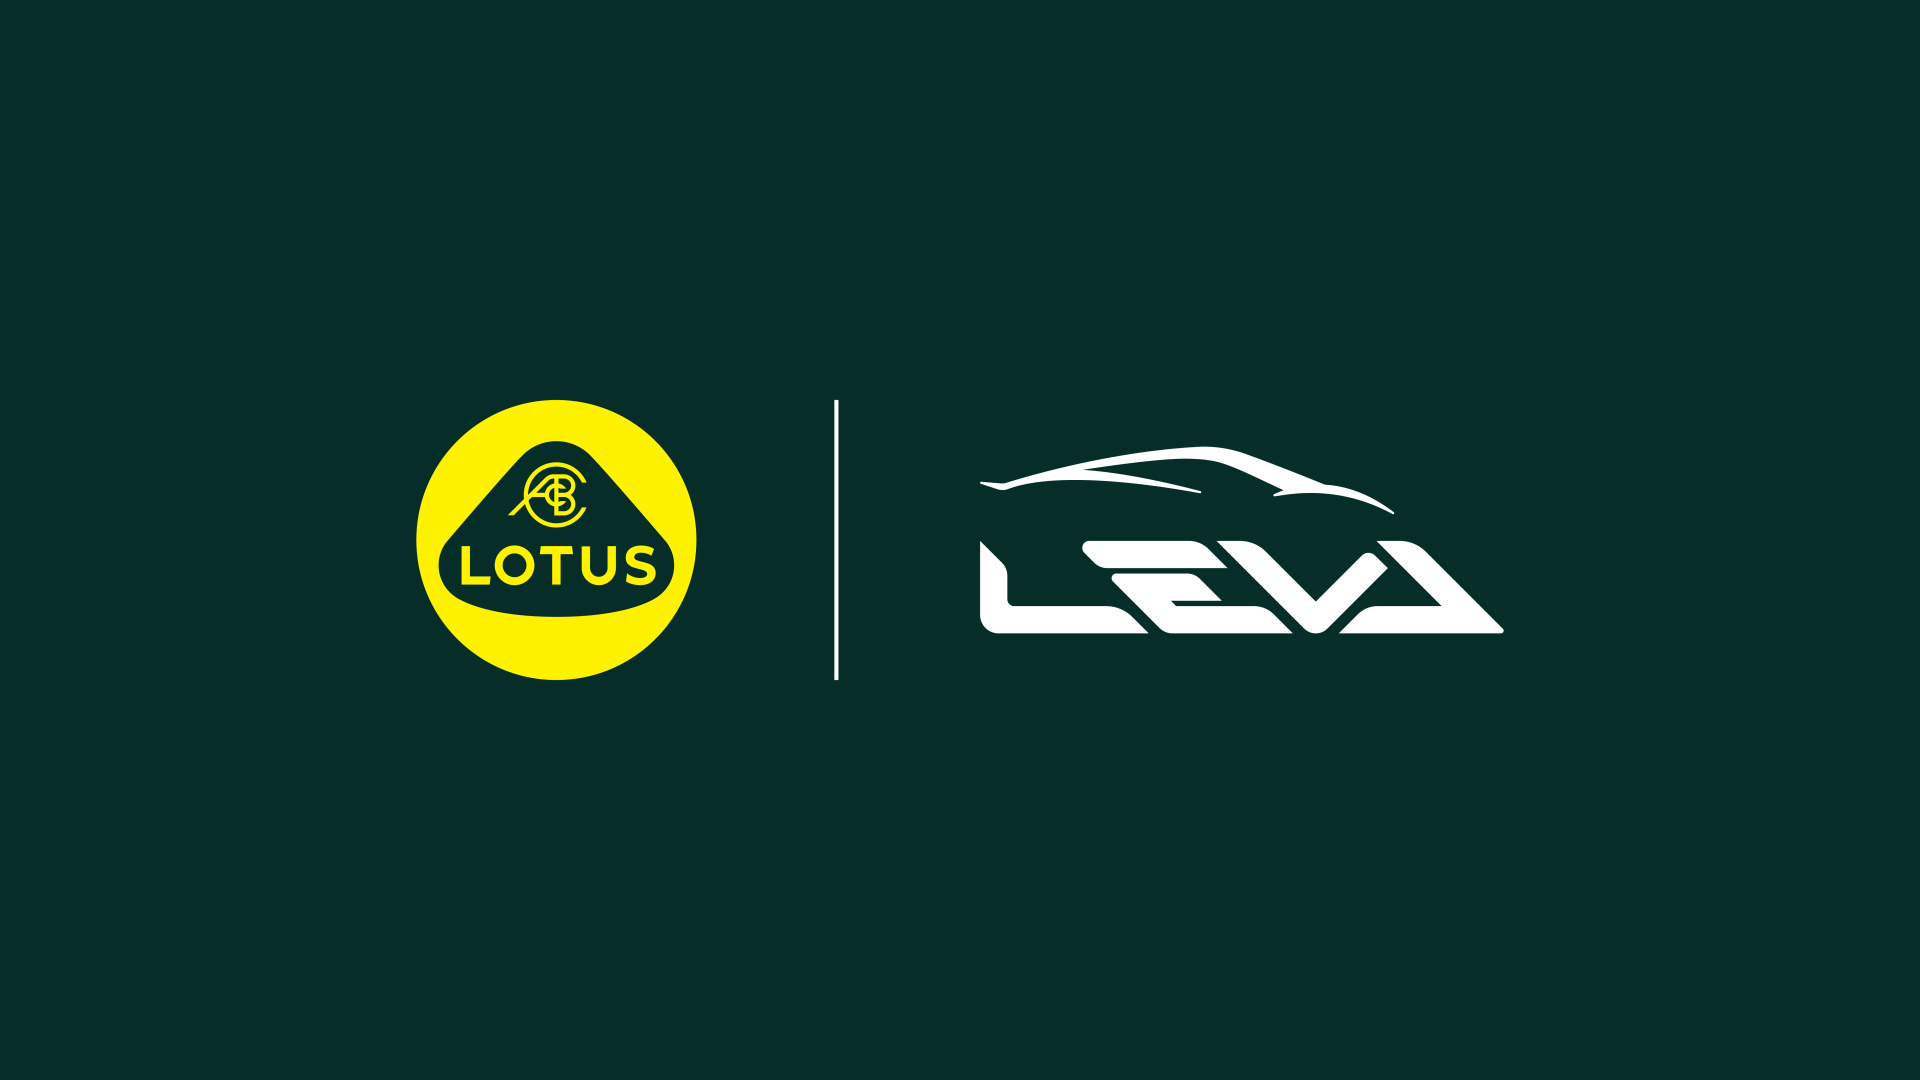 SMALL_LOTUS_LEVA-logo